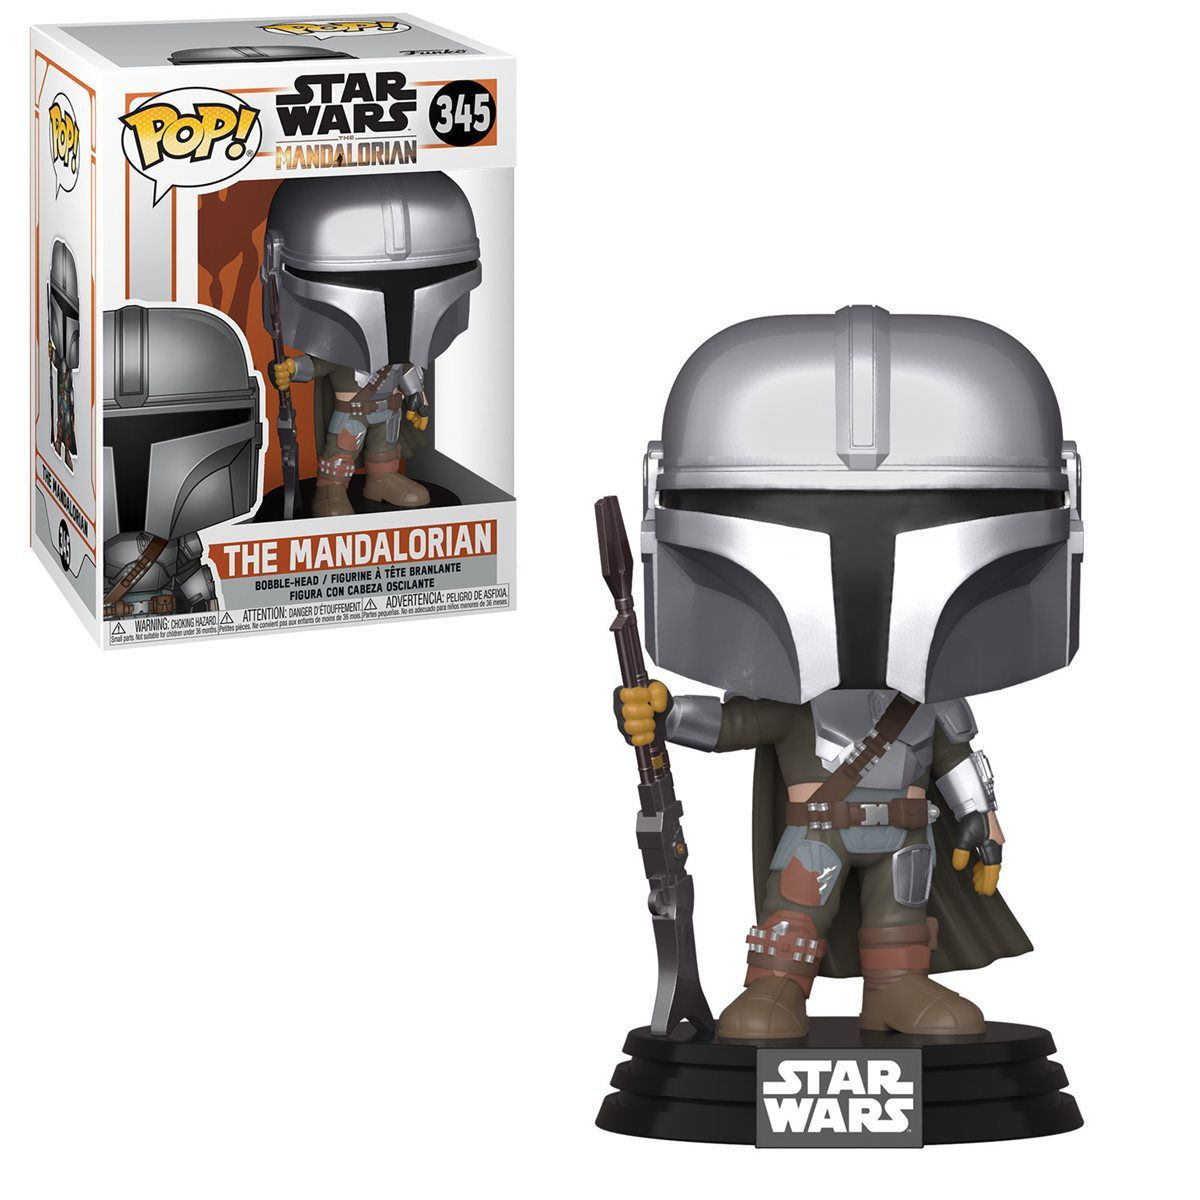 Funko Pop! The Mandalorian - Star Wars #345